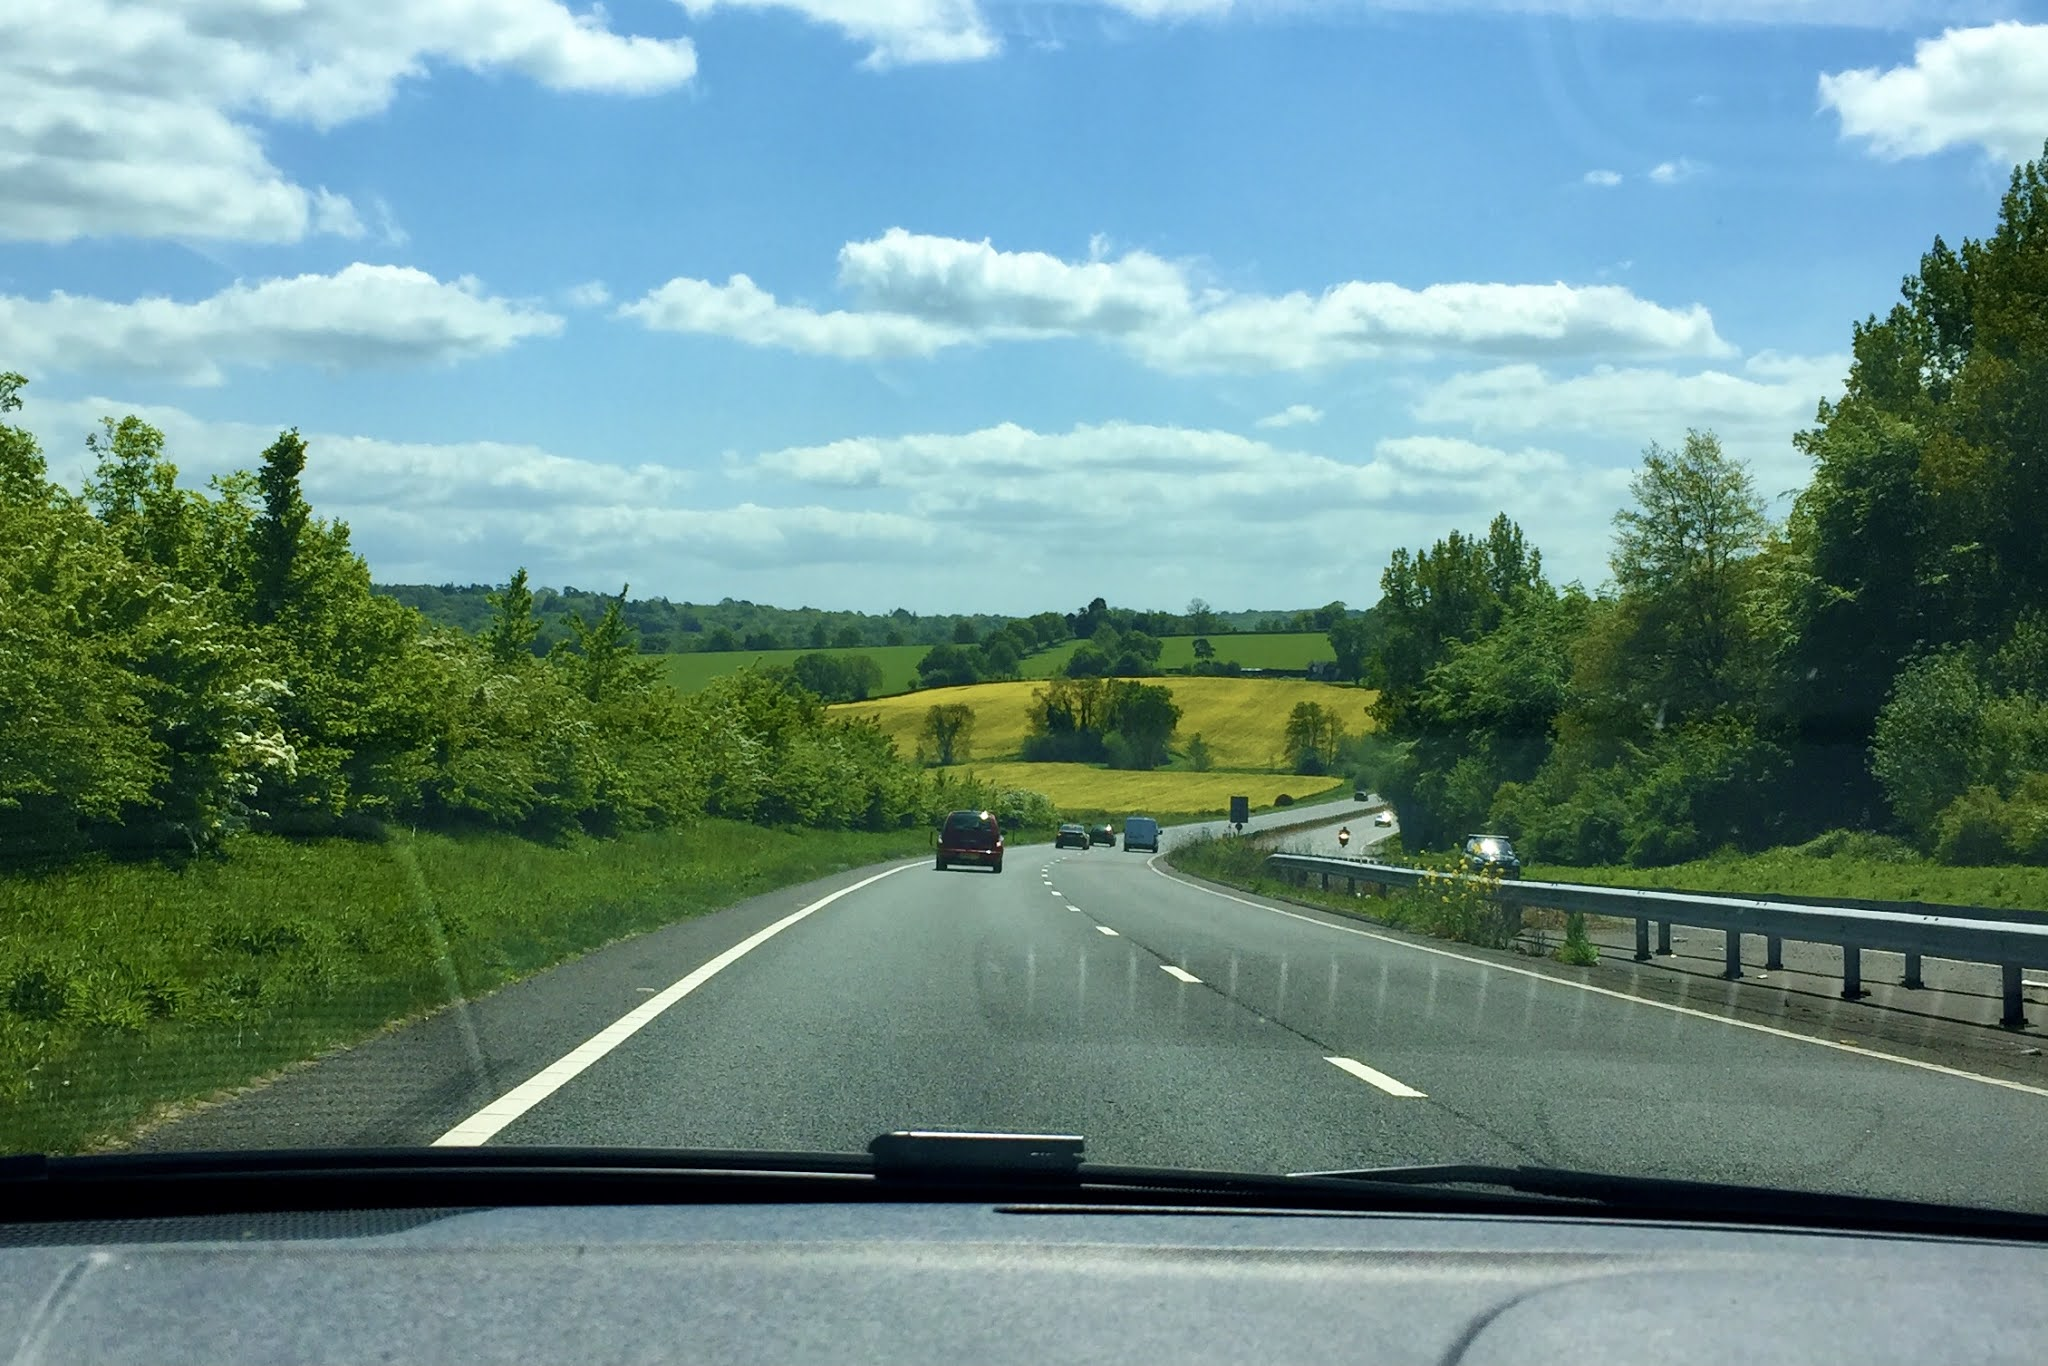 Going on a long car journey? Why not try these games to play with children